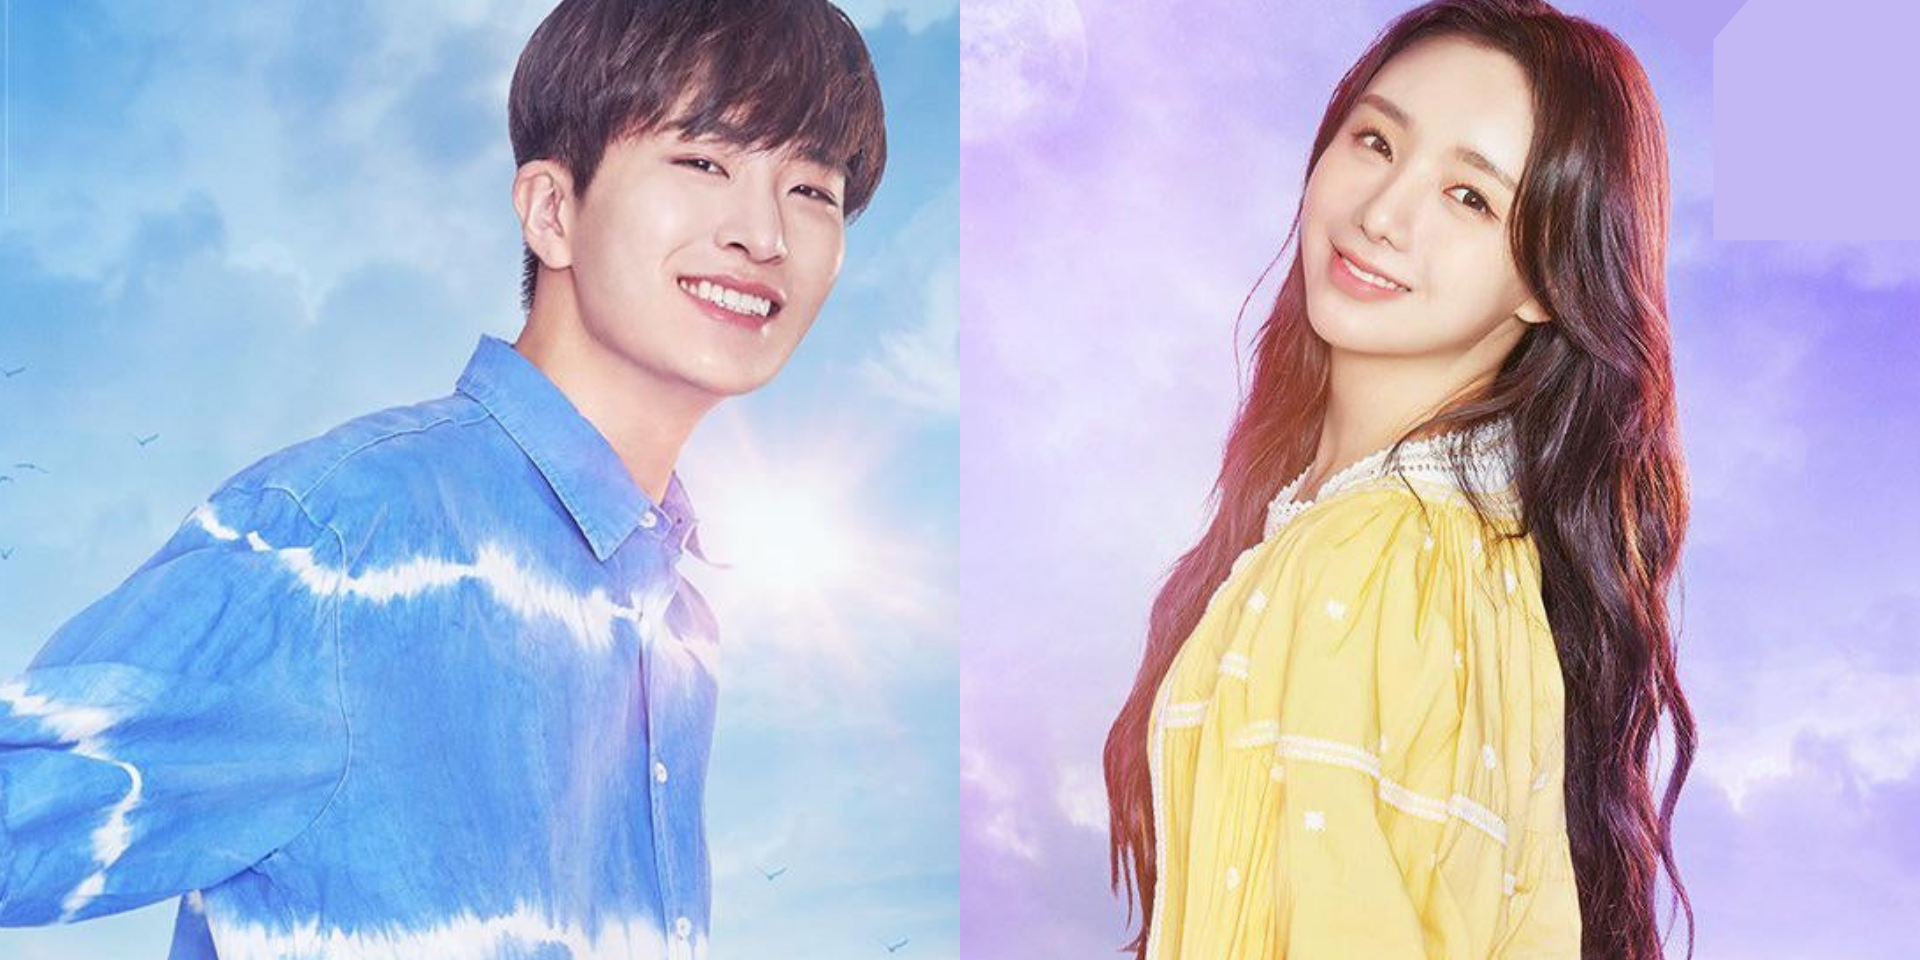 GOT7's Youngjae and Lovelyz's Kei release 'Goodbye Days' from romance musical Midnight Sun